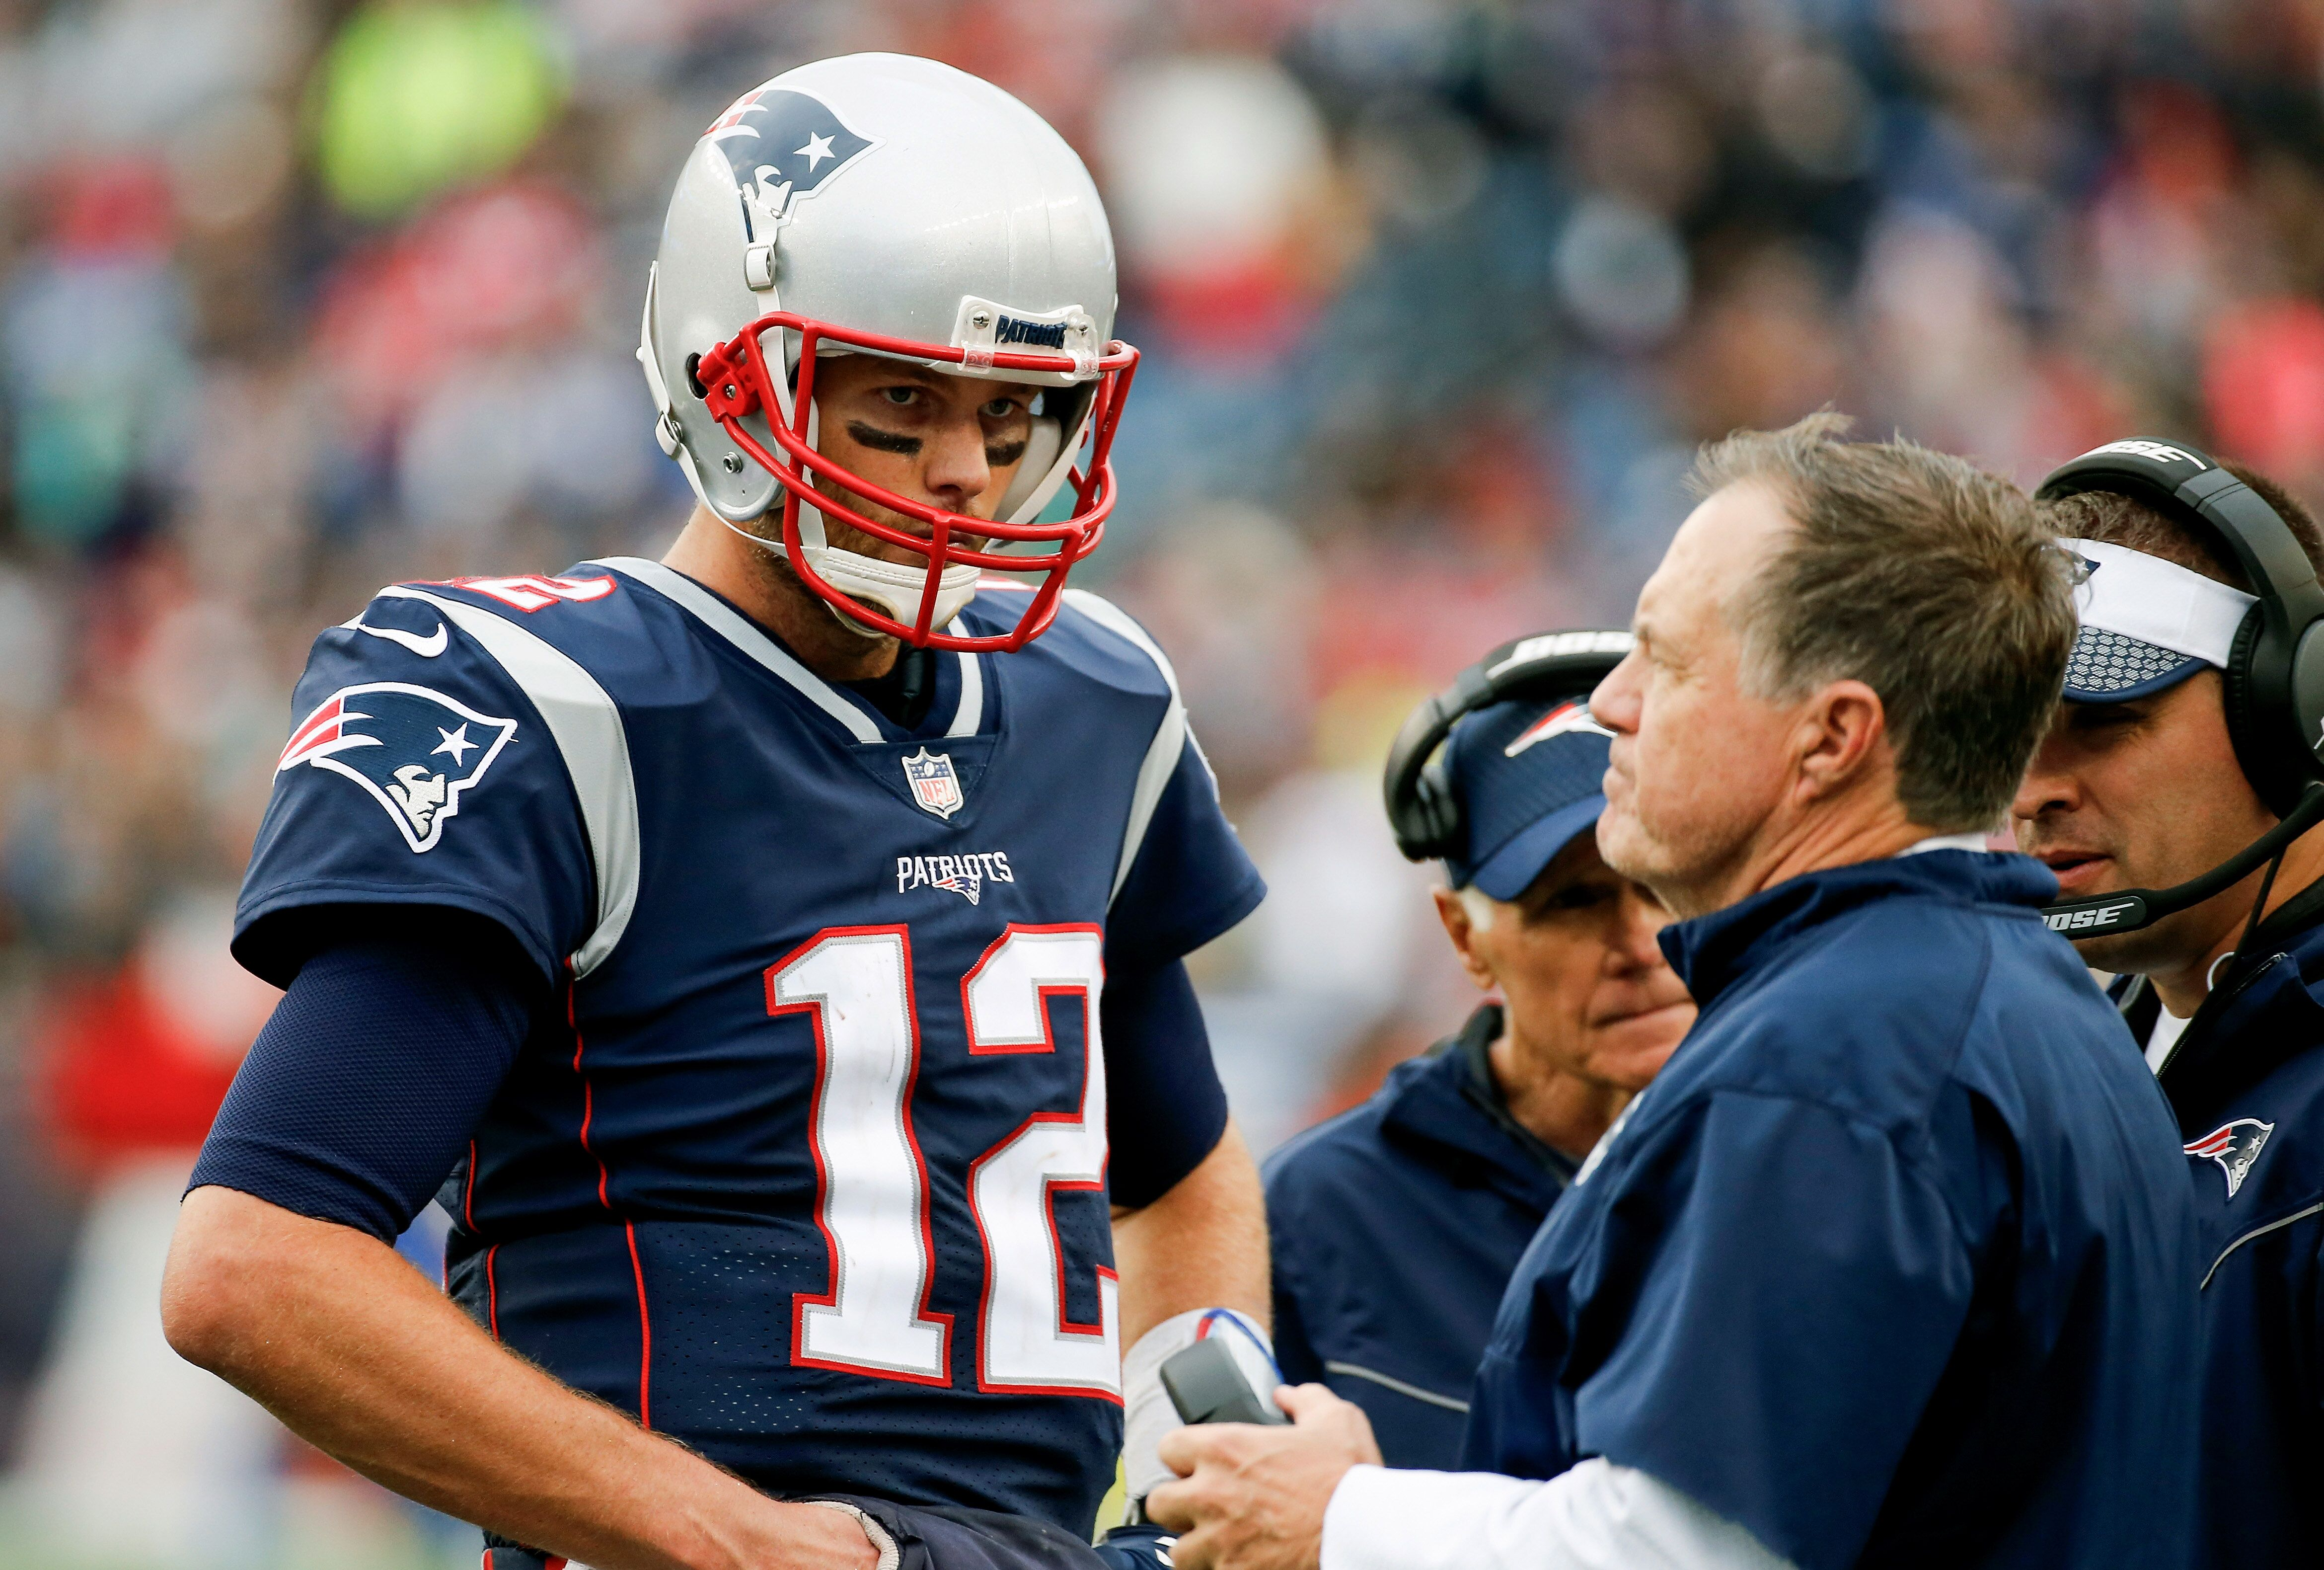 c0bebd341 New England Patriots vs Miami Dolphins: Game 14 Preview and Prediction